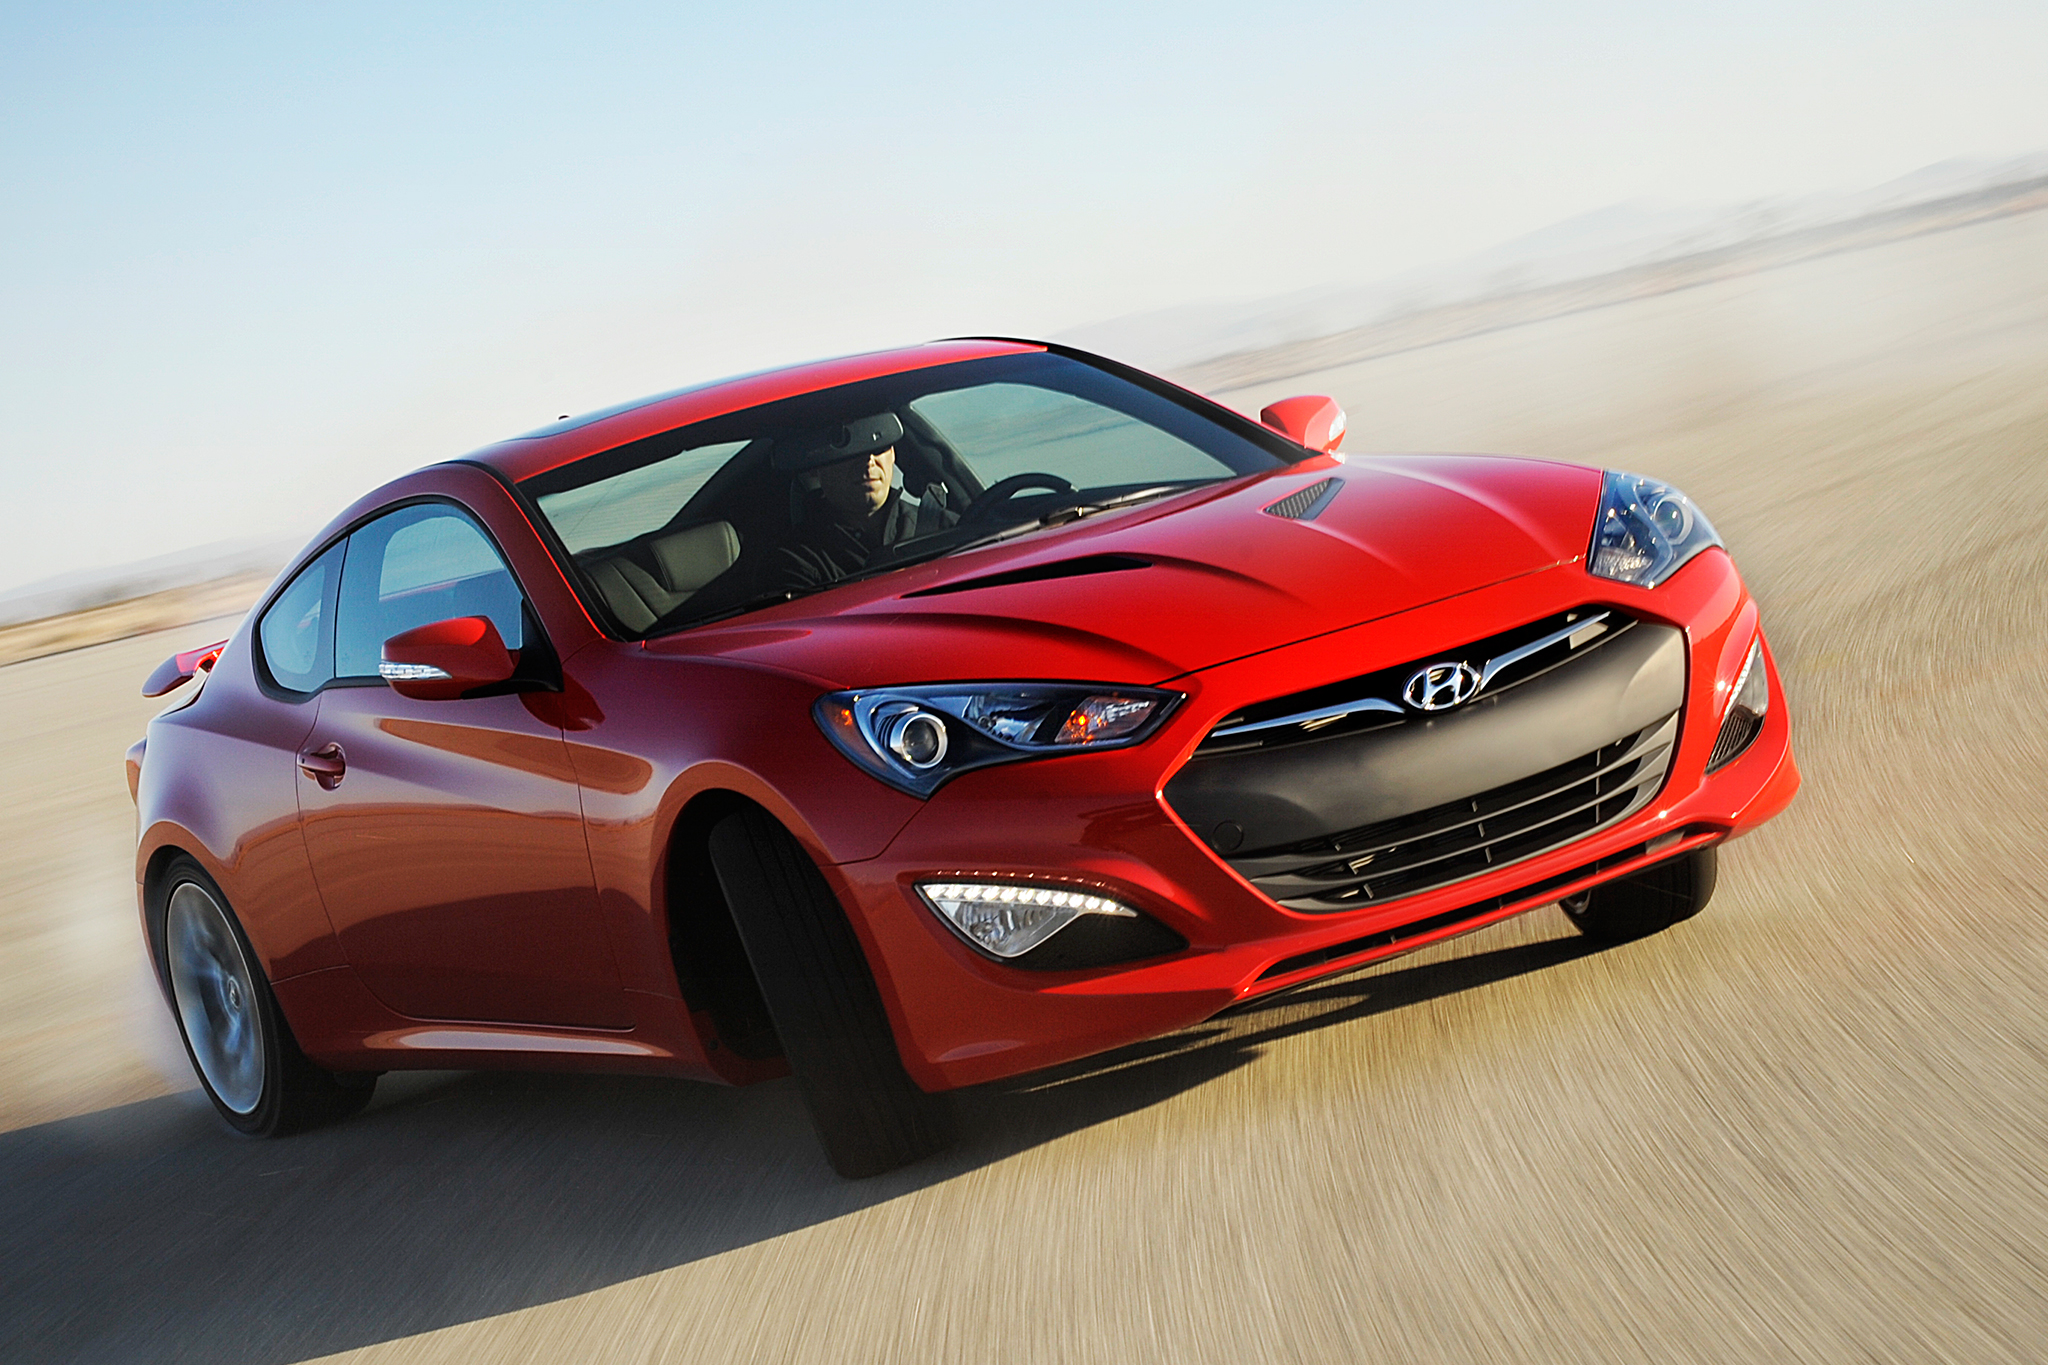 2014 Hyundai Genesis Coupe Gets Minor Update Slight Price Bump